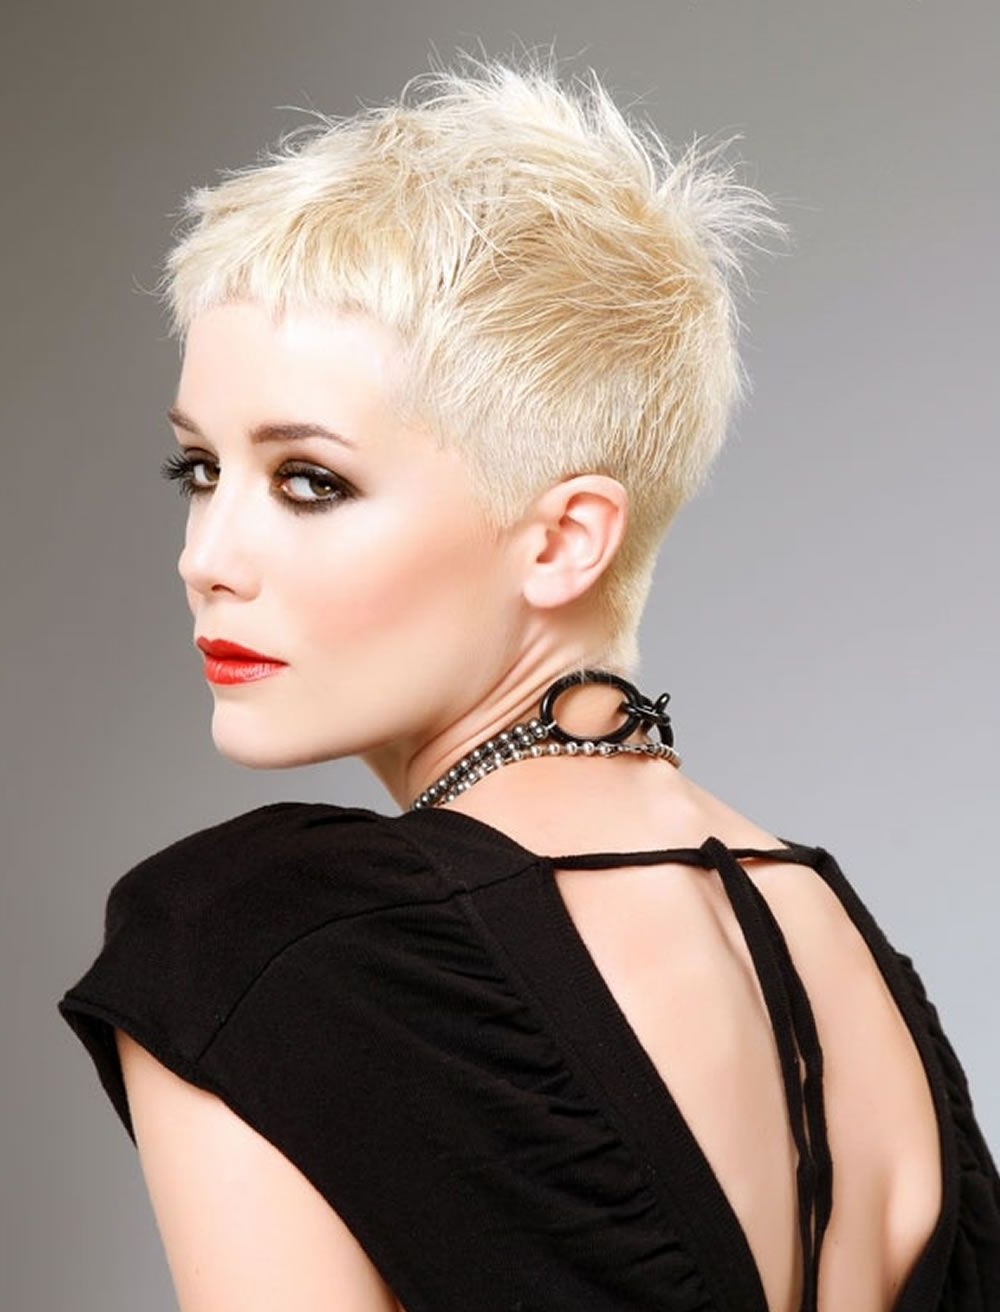 15 Photos Short Blonde Pixie Hairstyles